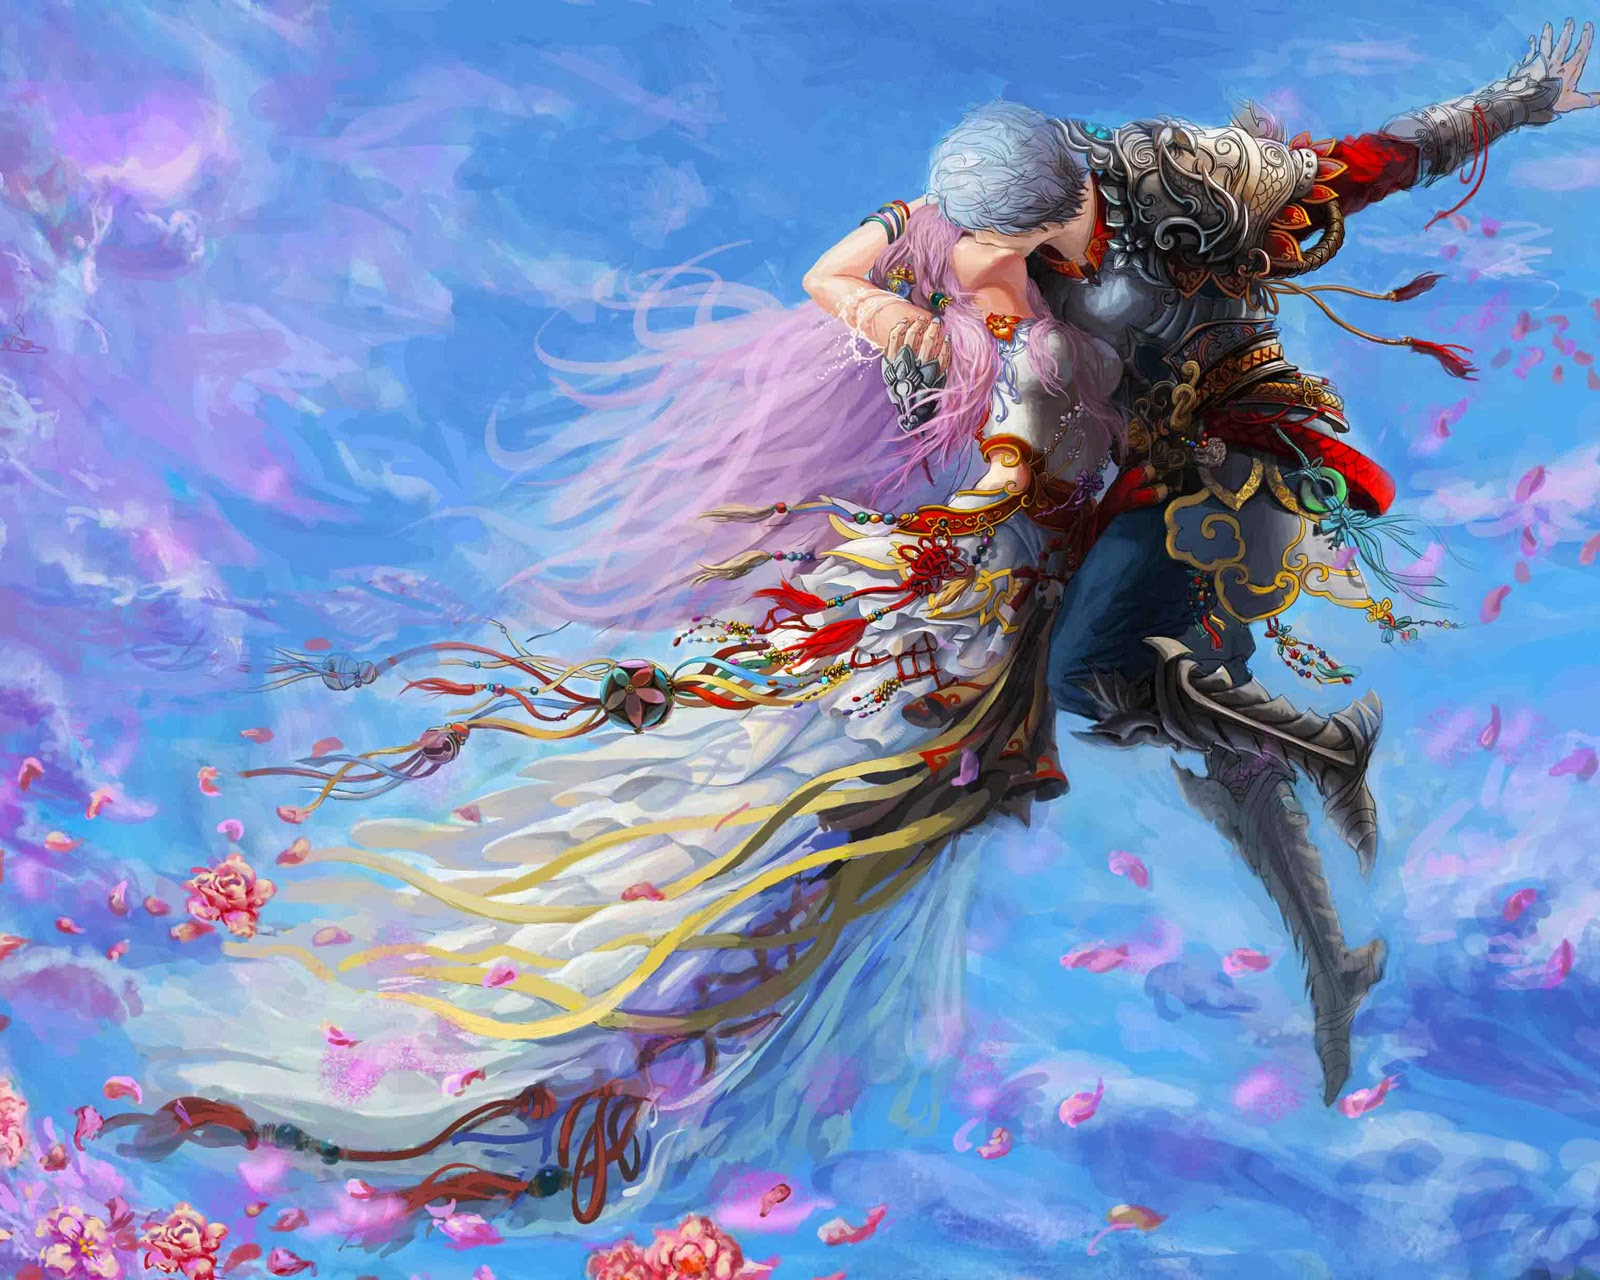 Love Wallpaper Painting : Romantic Lovers Paintings Digital Art cG Pictures Free ...